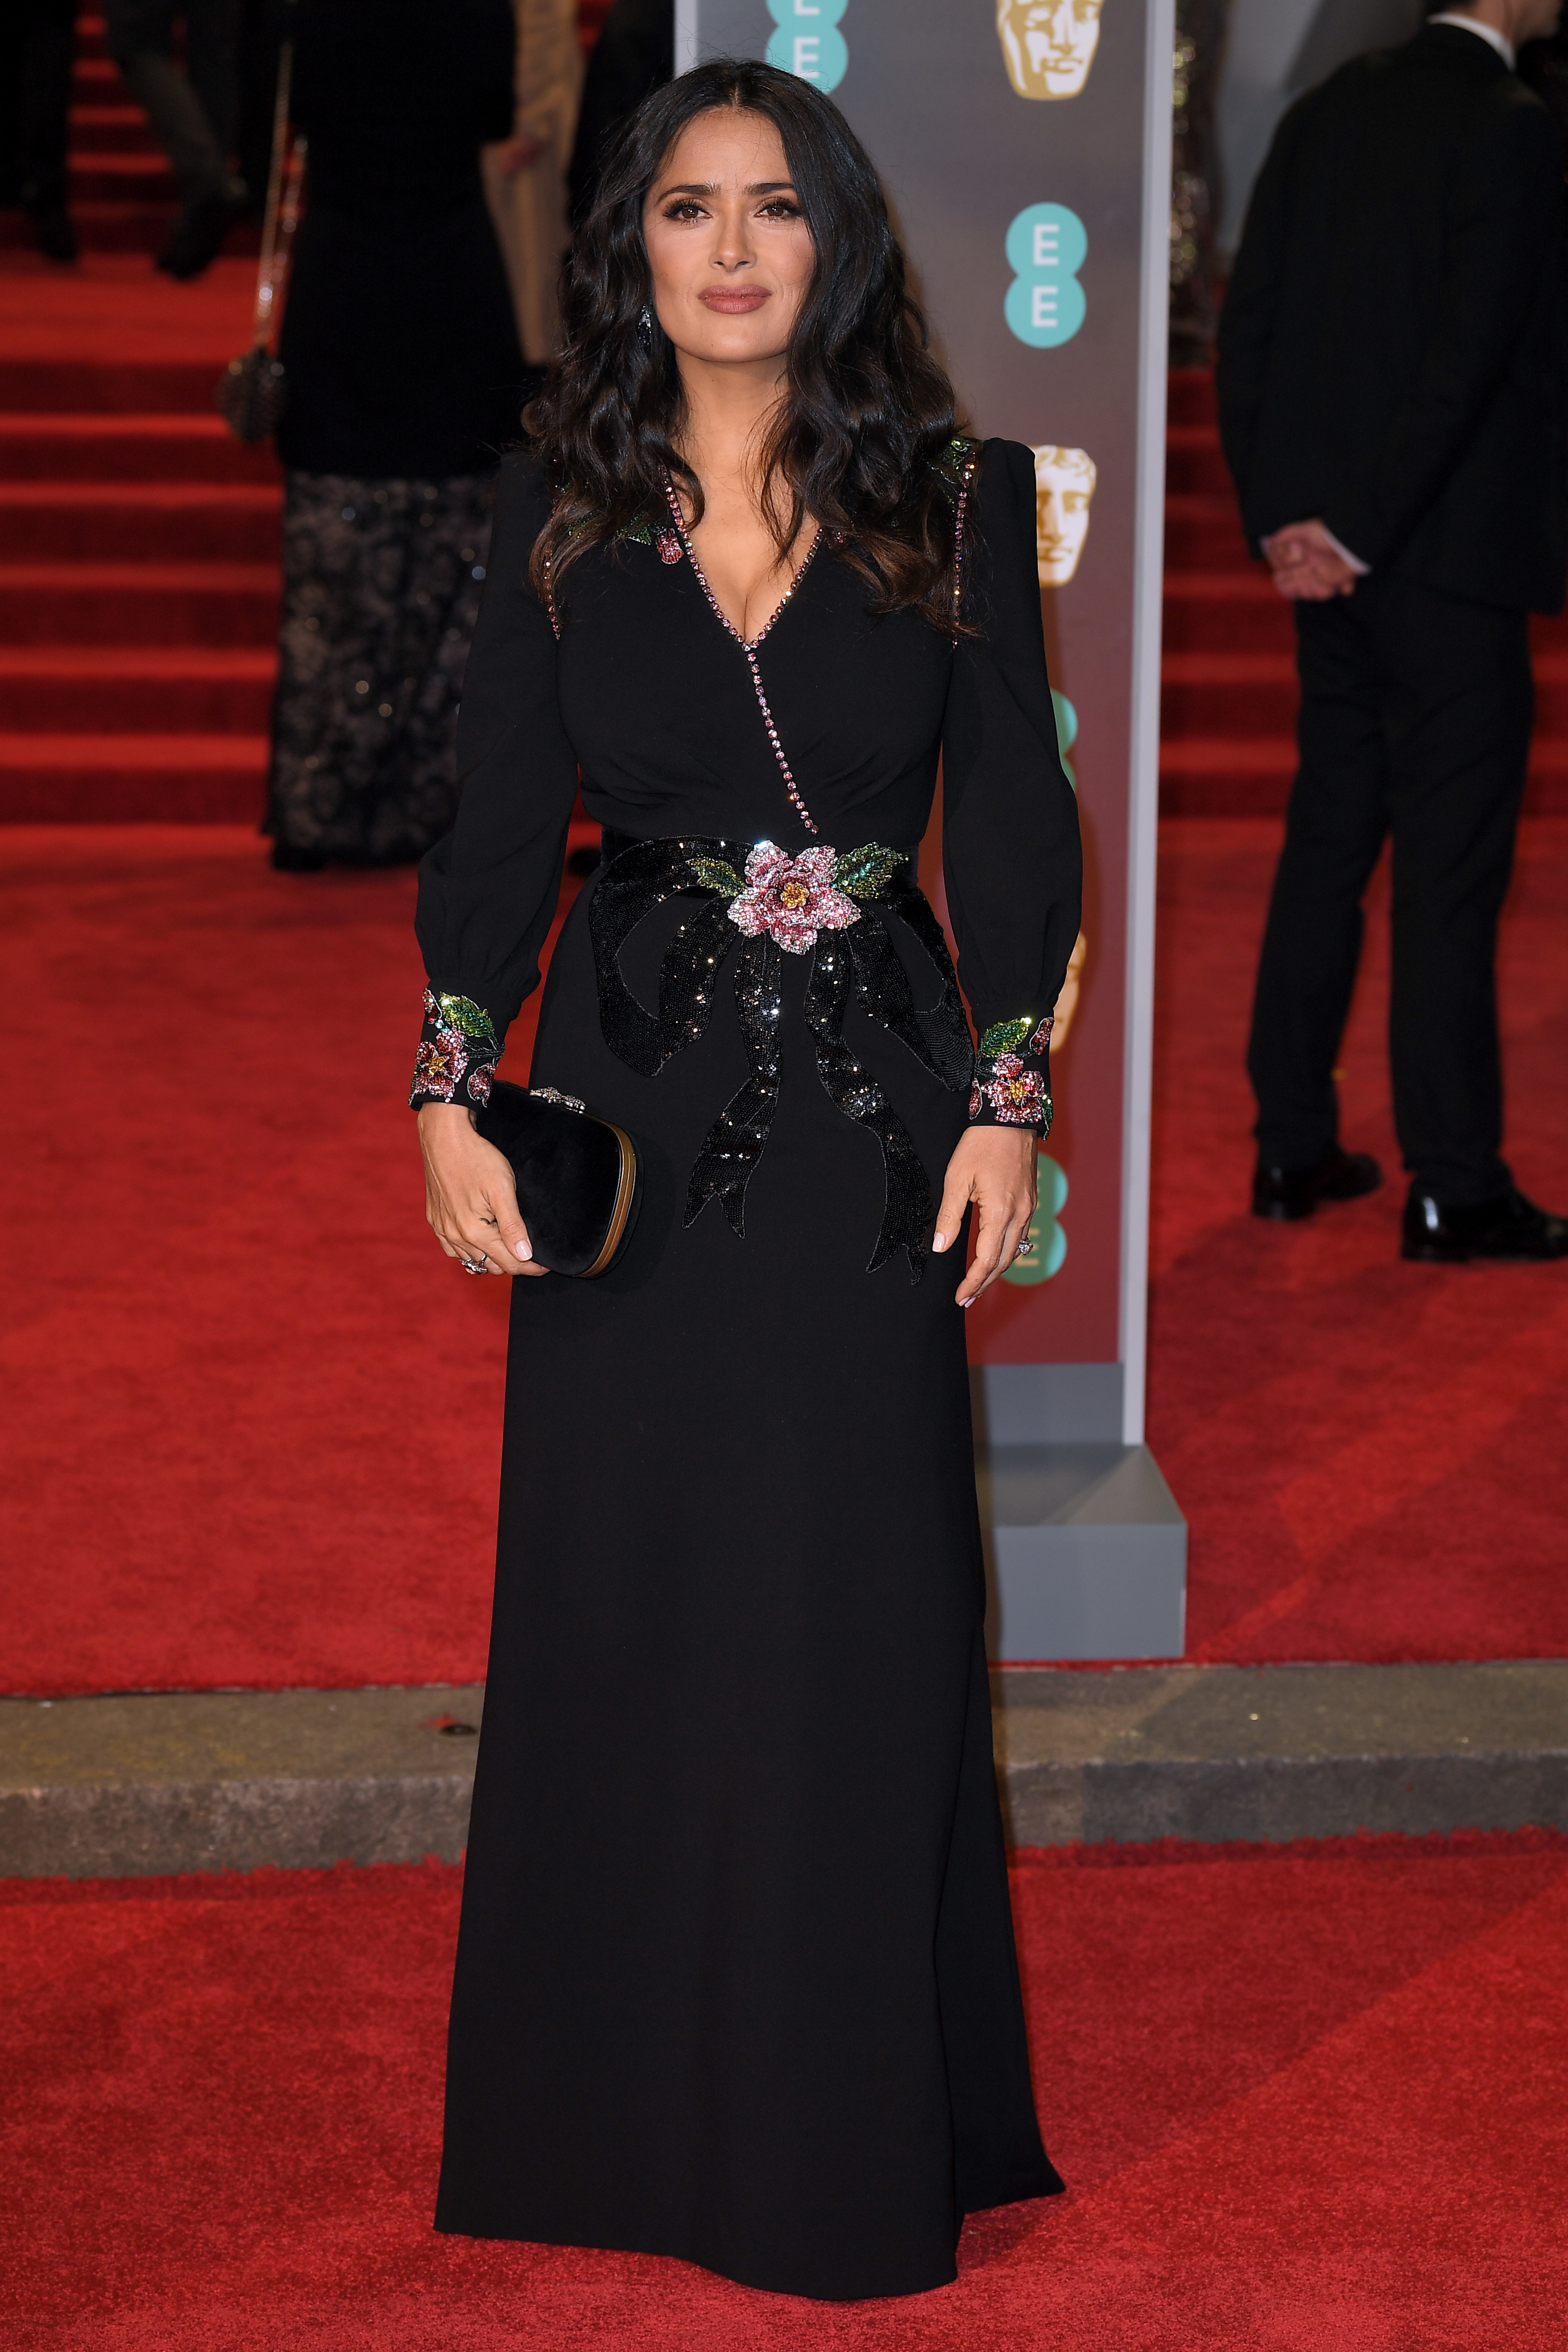 Salma Hayek arrives at the 71st EE British Academy Film Awards at the Royal Albert Hall in London on Feb. 18, 2018.